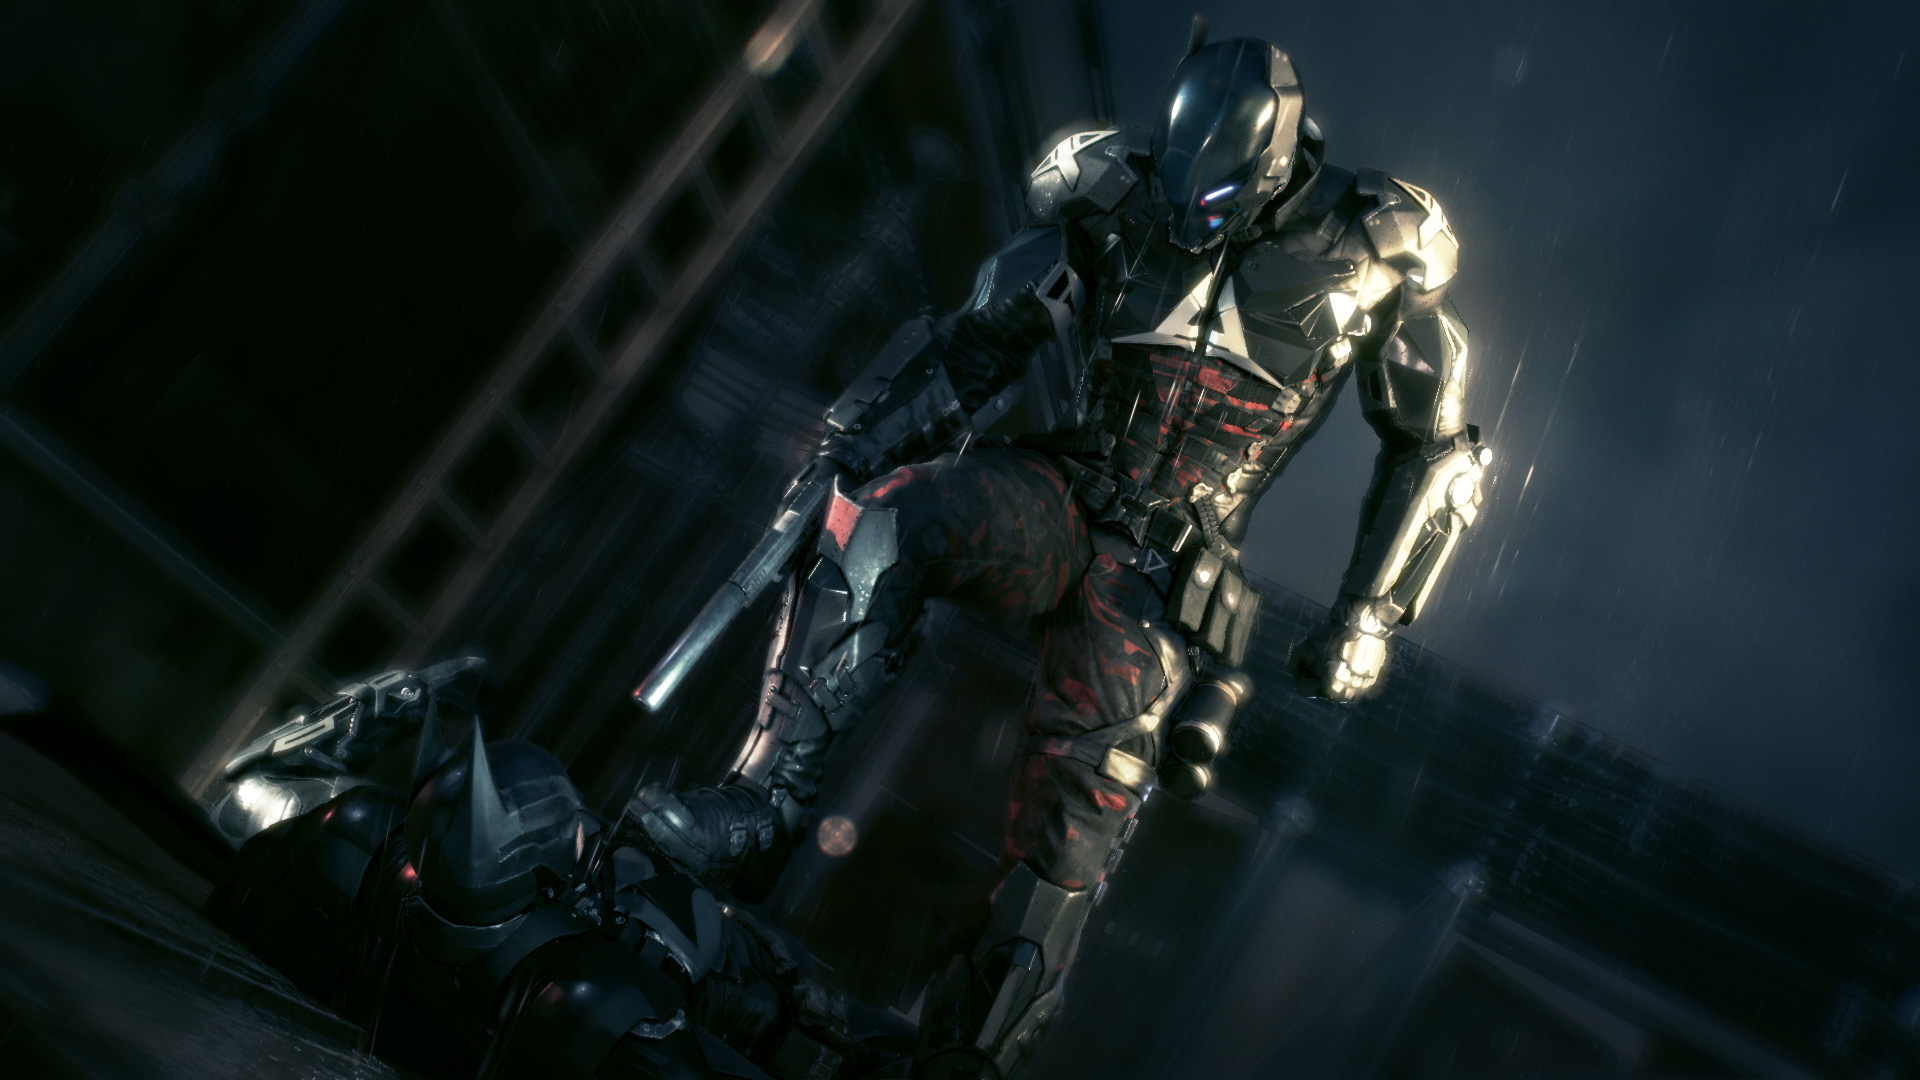 The Arkham Knight lording it over Batman.